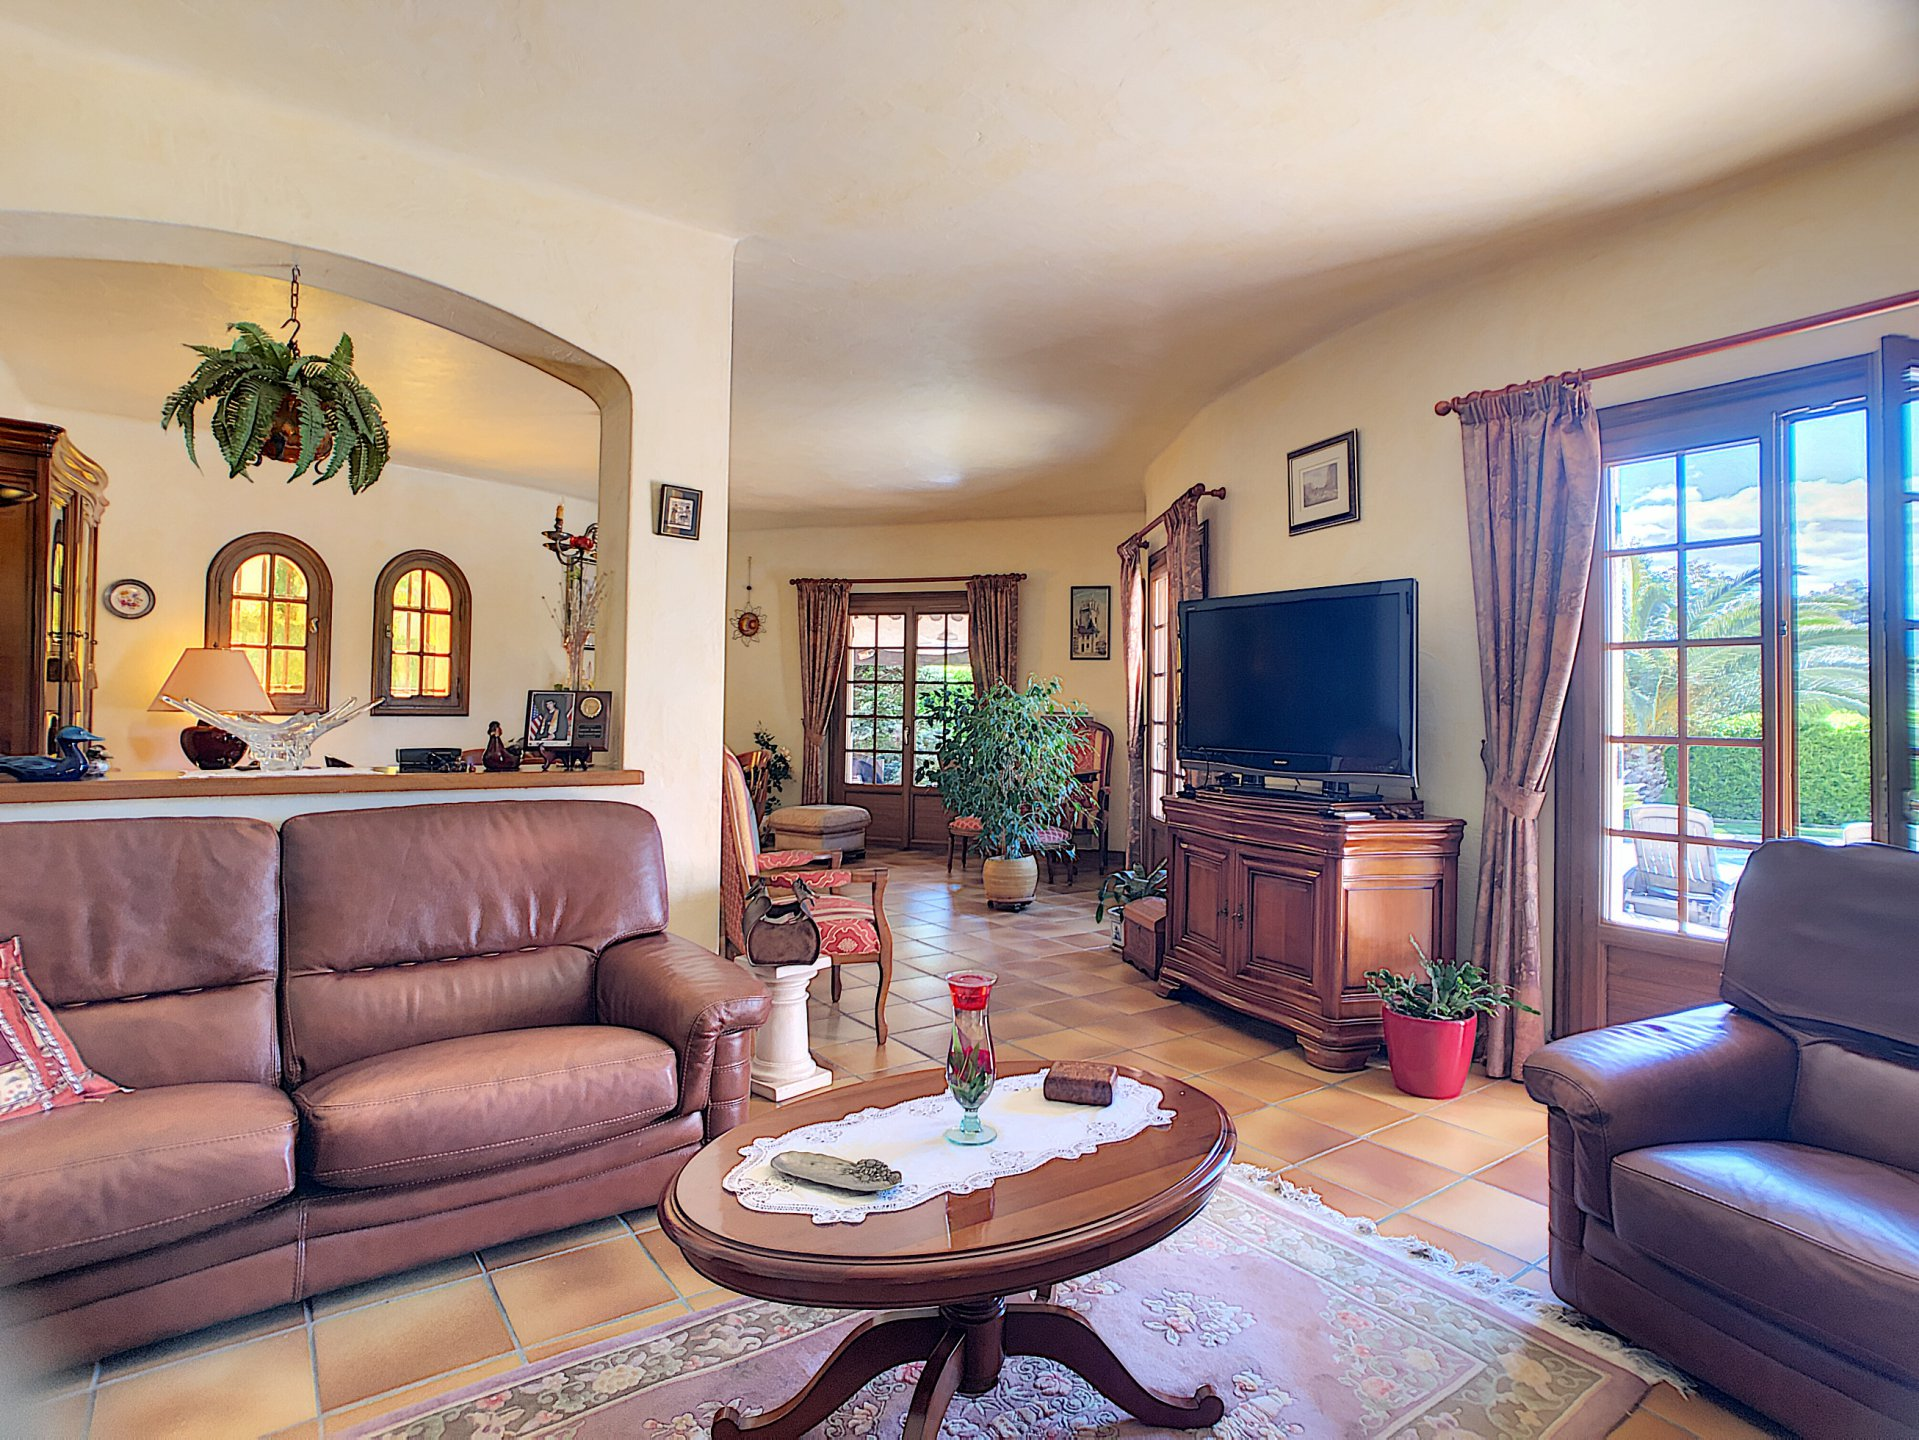 5 rooms villa walking distance from the center